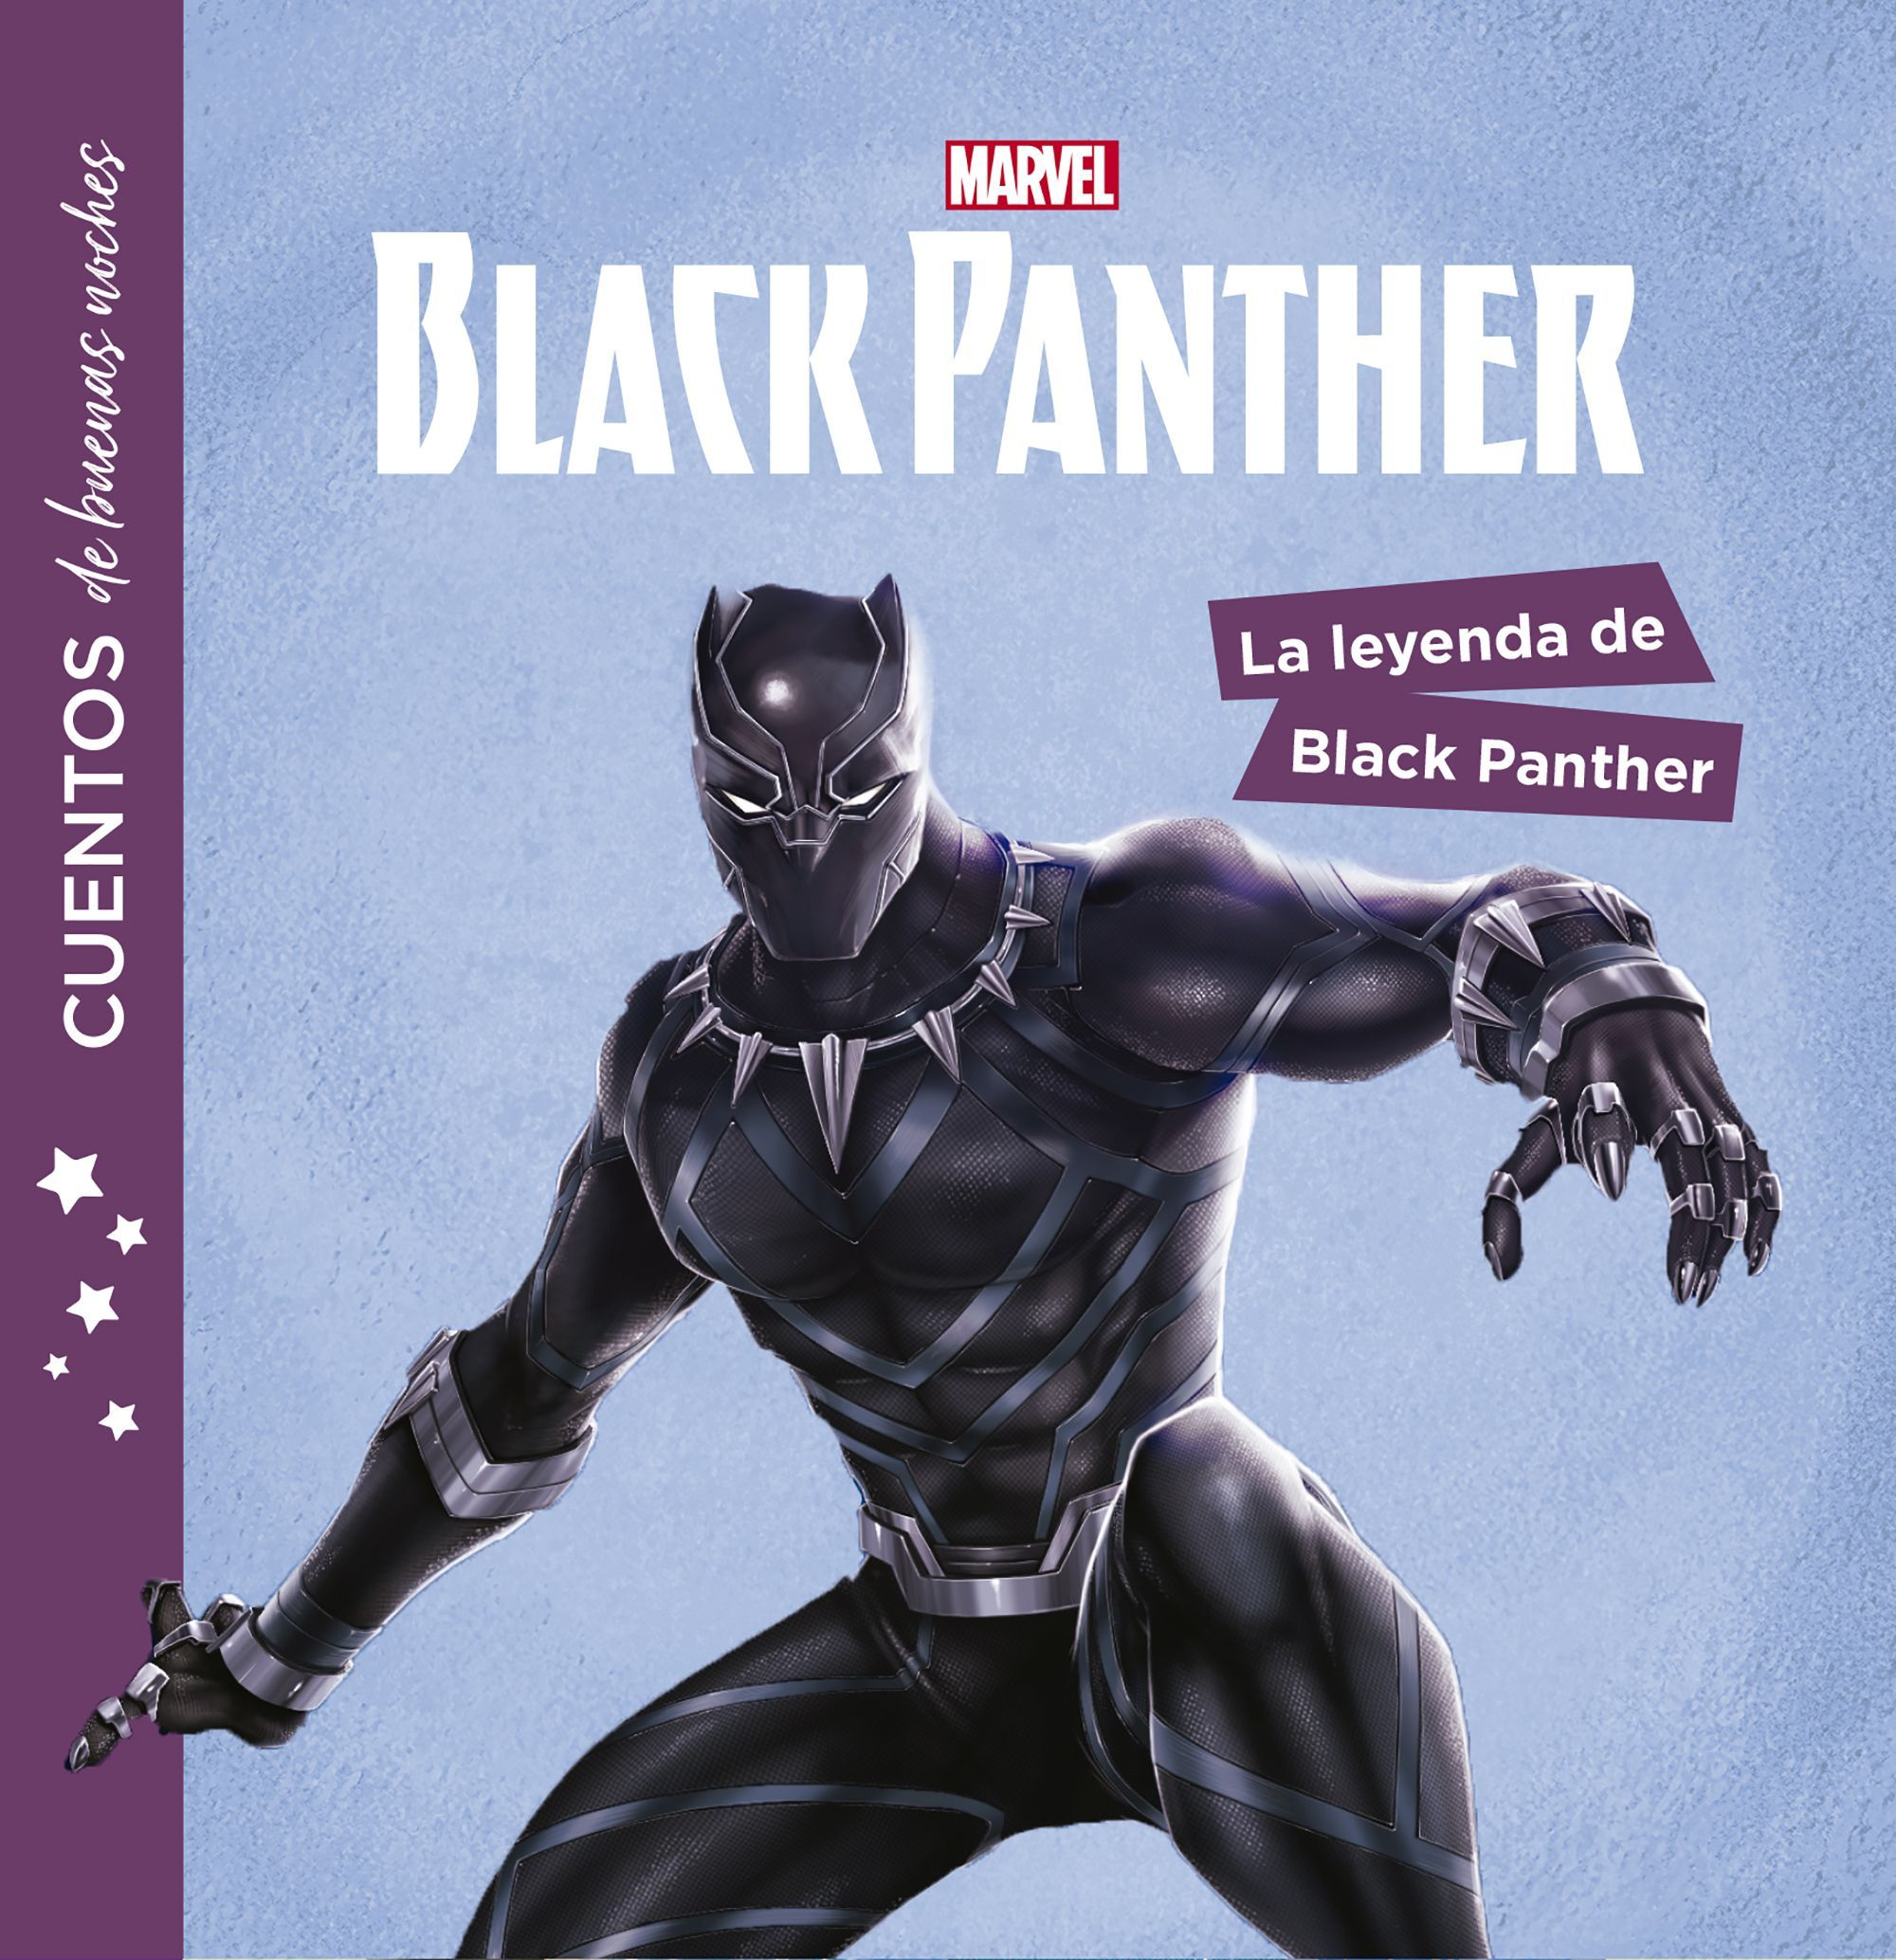 BLACK PANTHER LA LEYENDA DE BLACK PANTHER